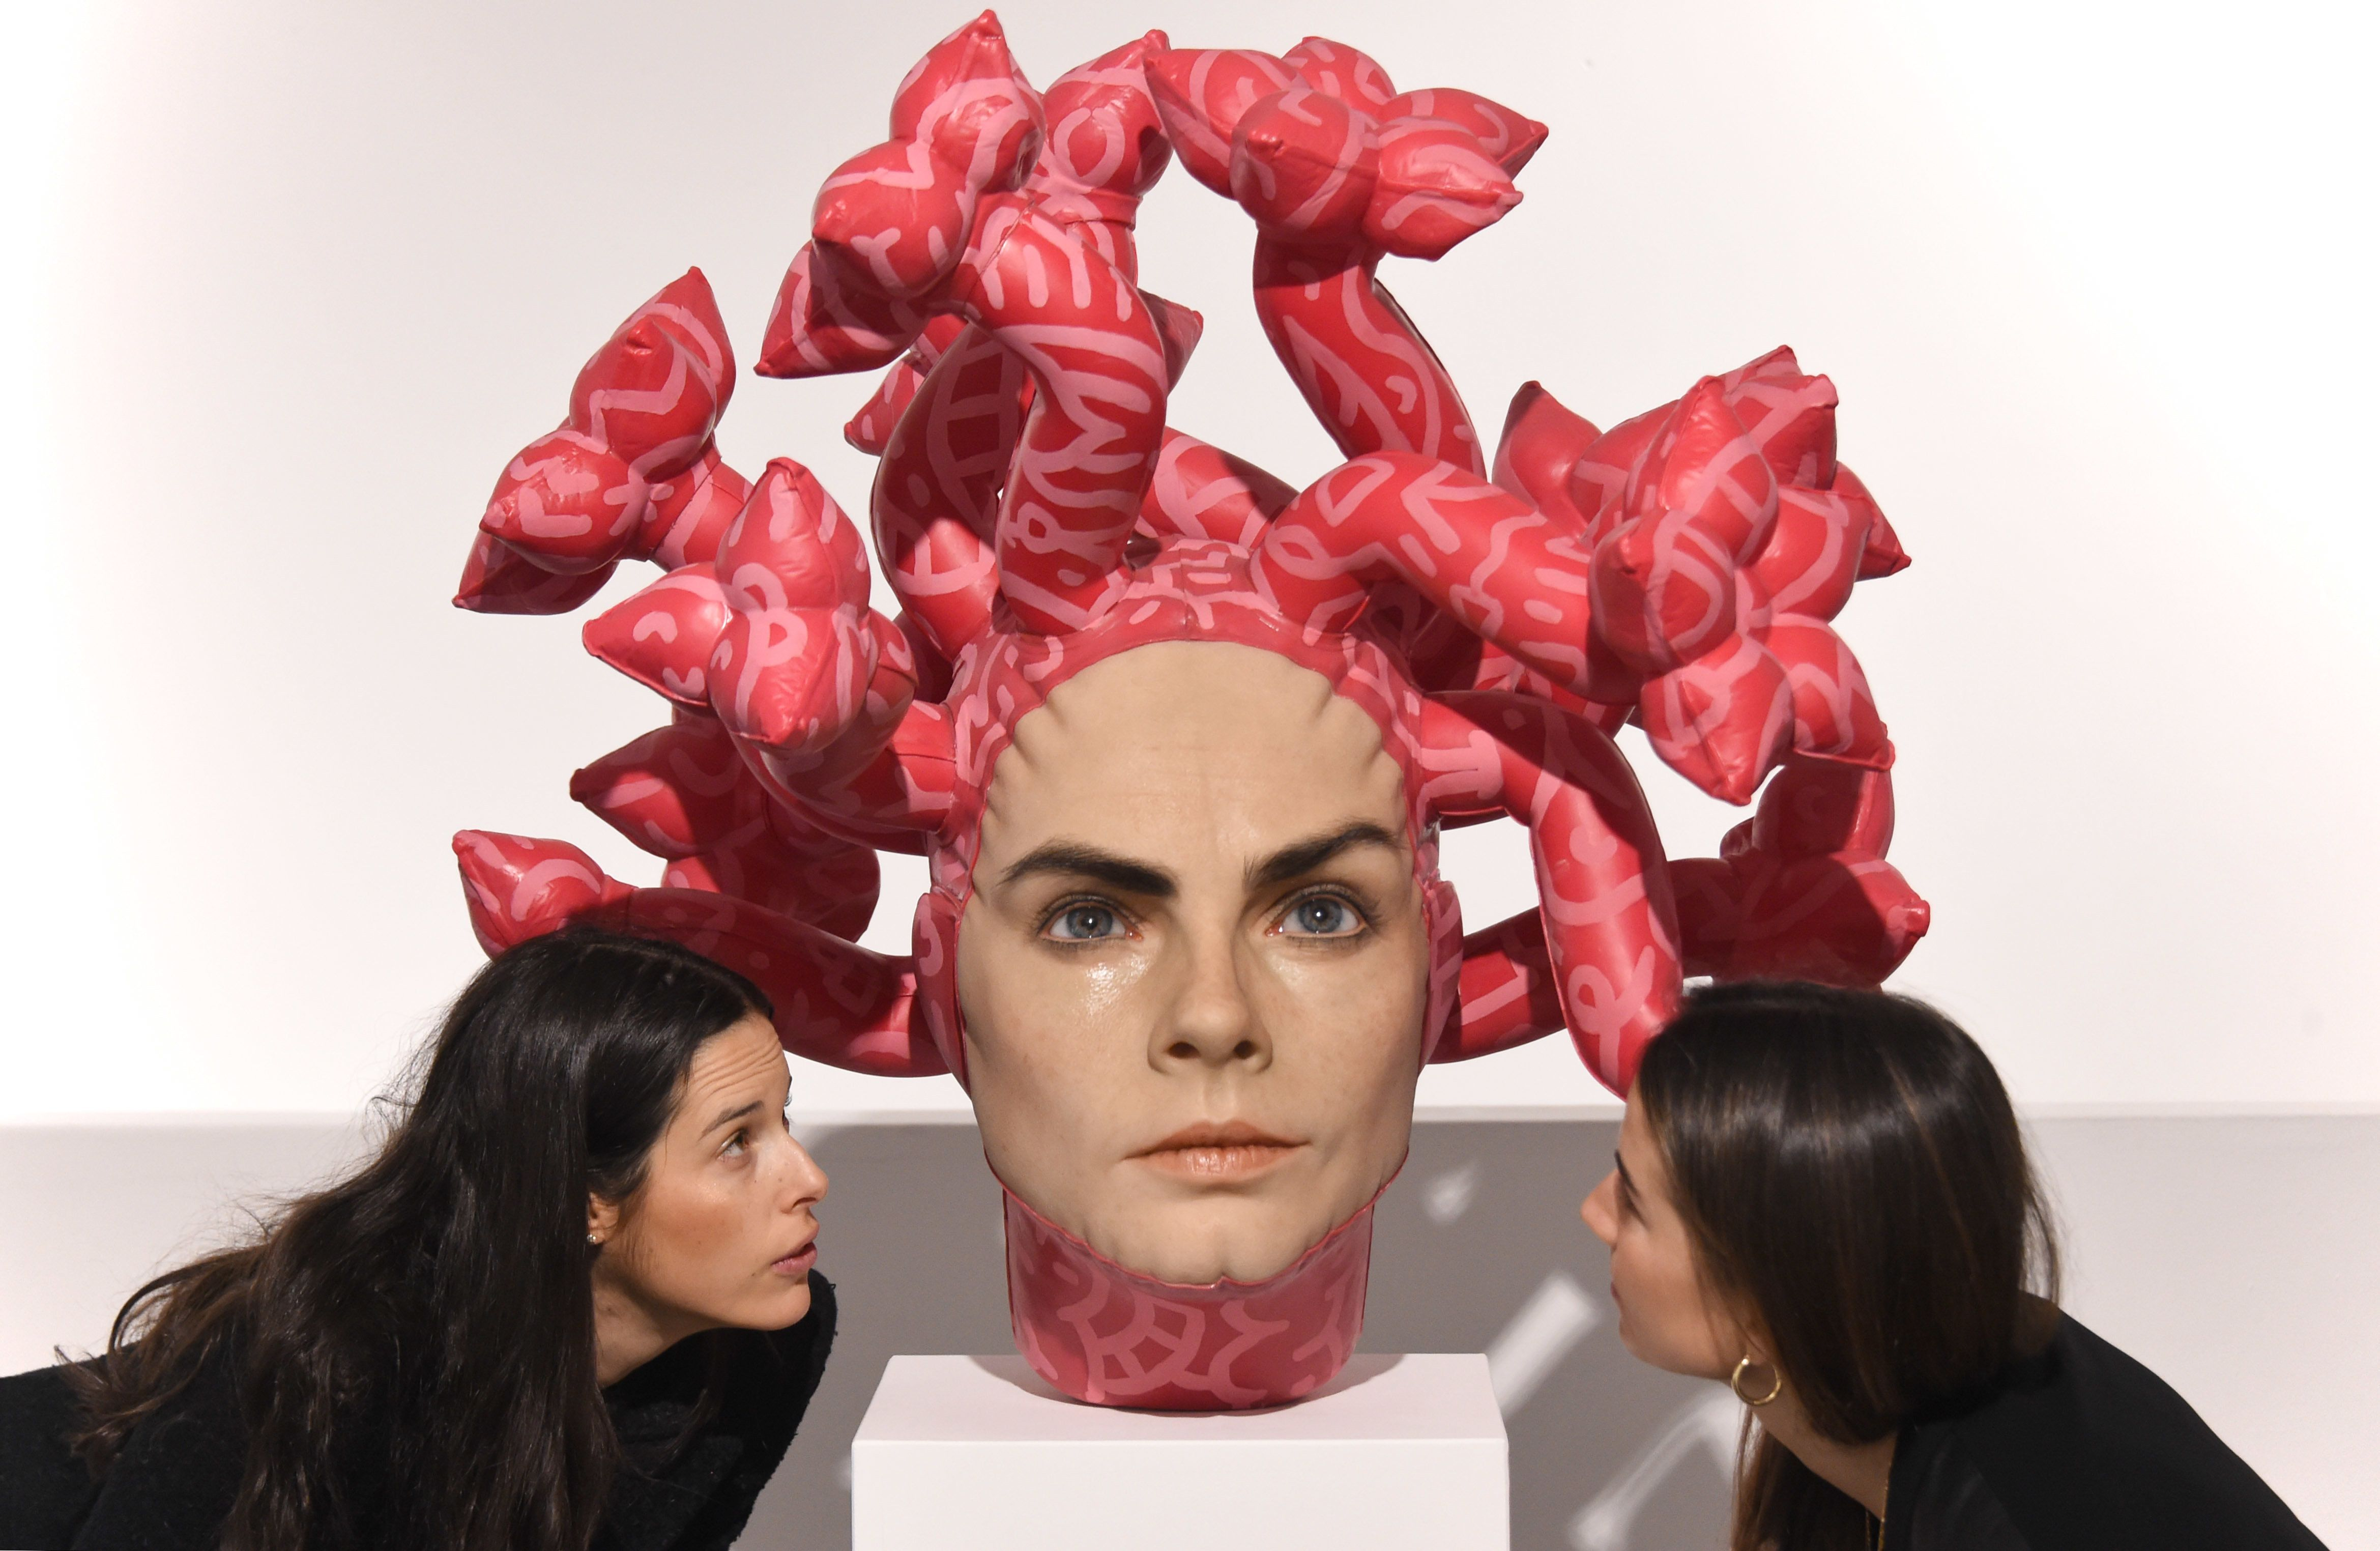 LONDON, ENGLAND - MARCH 27: Aspencrow's 'Olympe' sculpture is unveiled at JD Malat Gallery on March 27, 2019 in London, England. The artwork by contemporary sculpture Edgar Askelovic depicts model and actress Cara Delevingne. (Photo by Stuart C. Wilson/Getty Images)